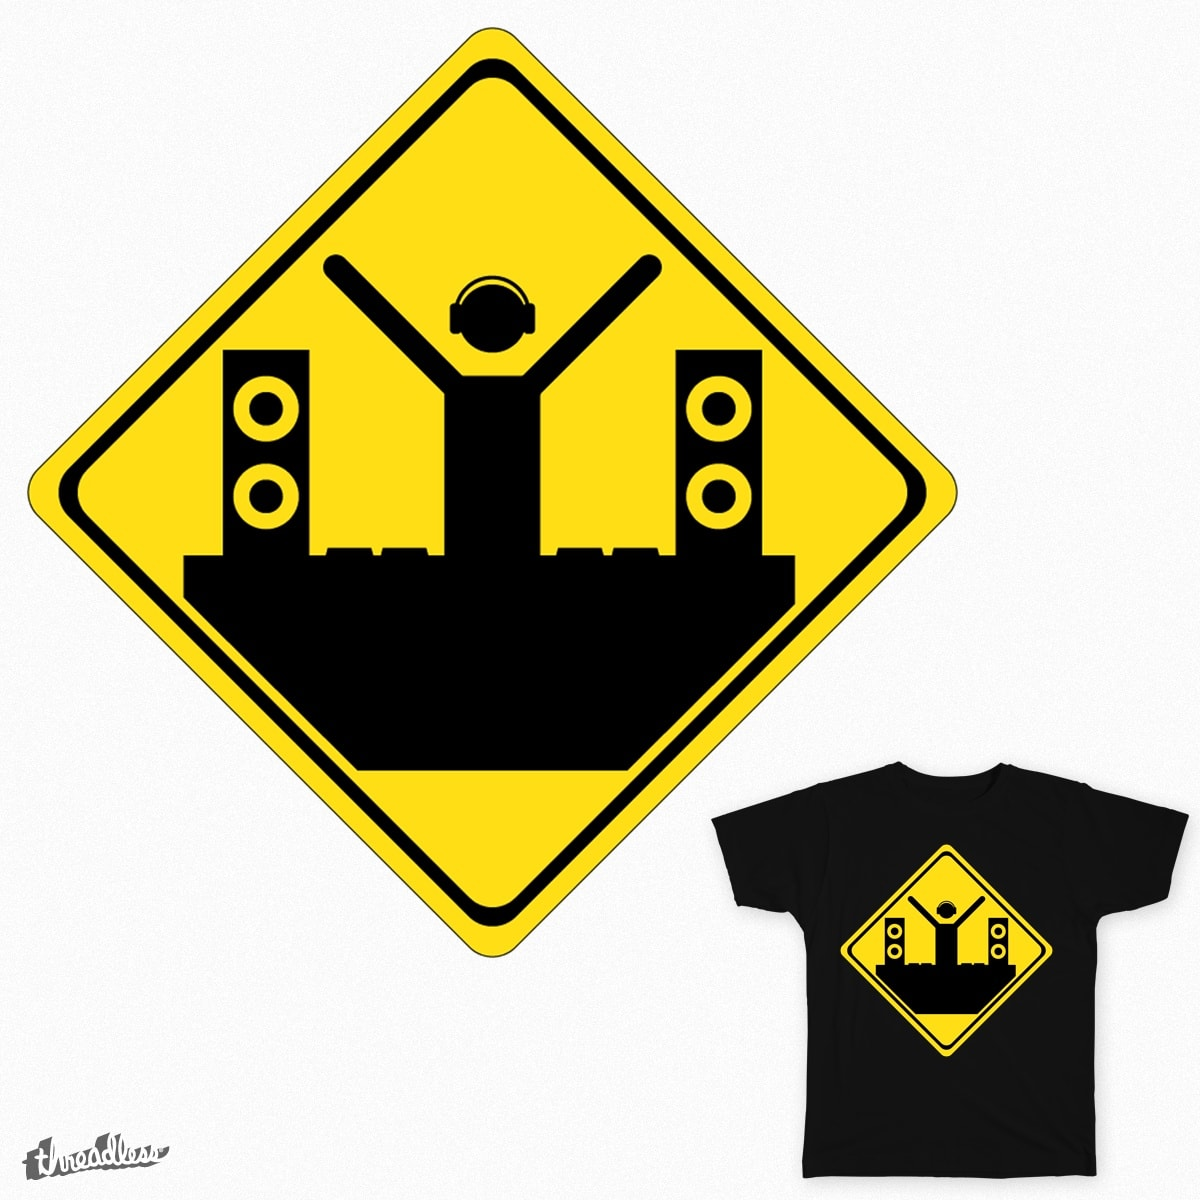 Rave Ahead by JustinStearns on Threadless